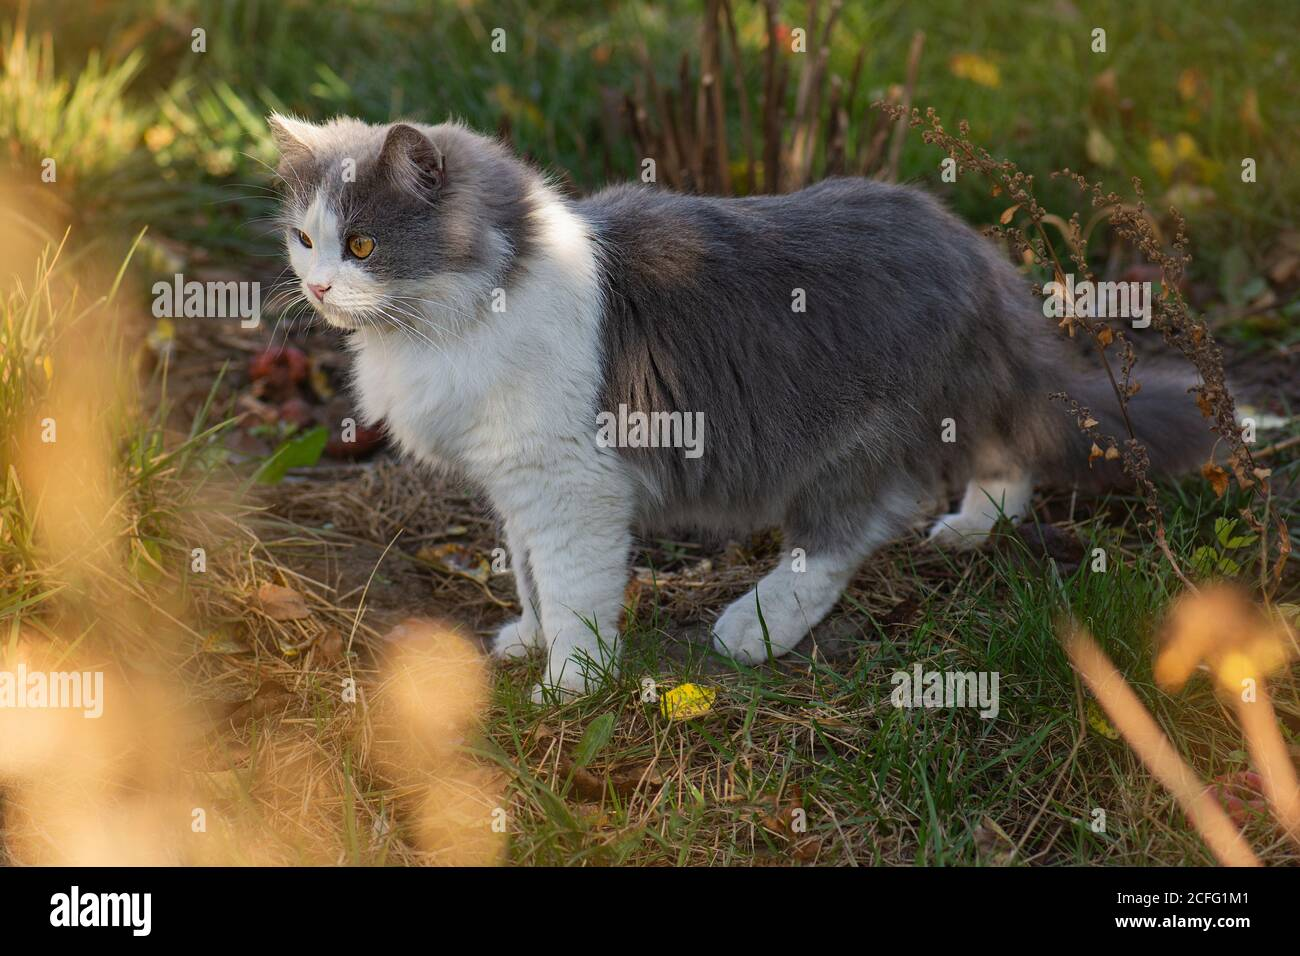 Funny kitten in yellow autumn leaves. Cat playing in autumn with foliage. British kitten in colored leaves on nature. Stock Photo